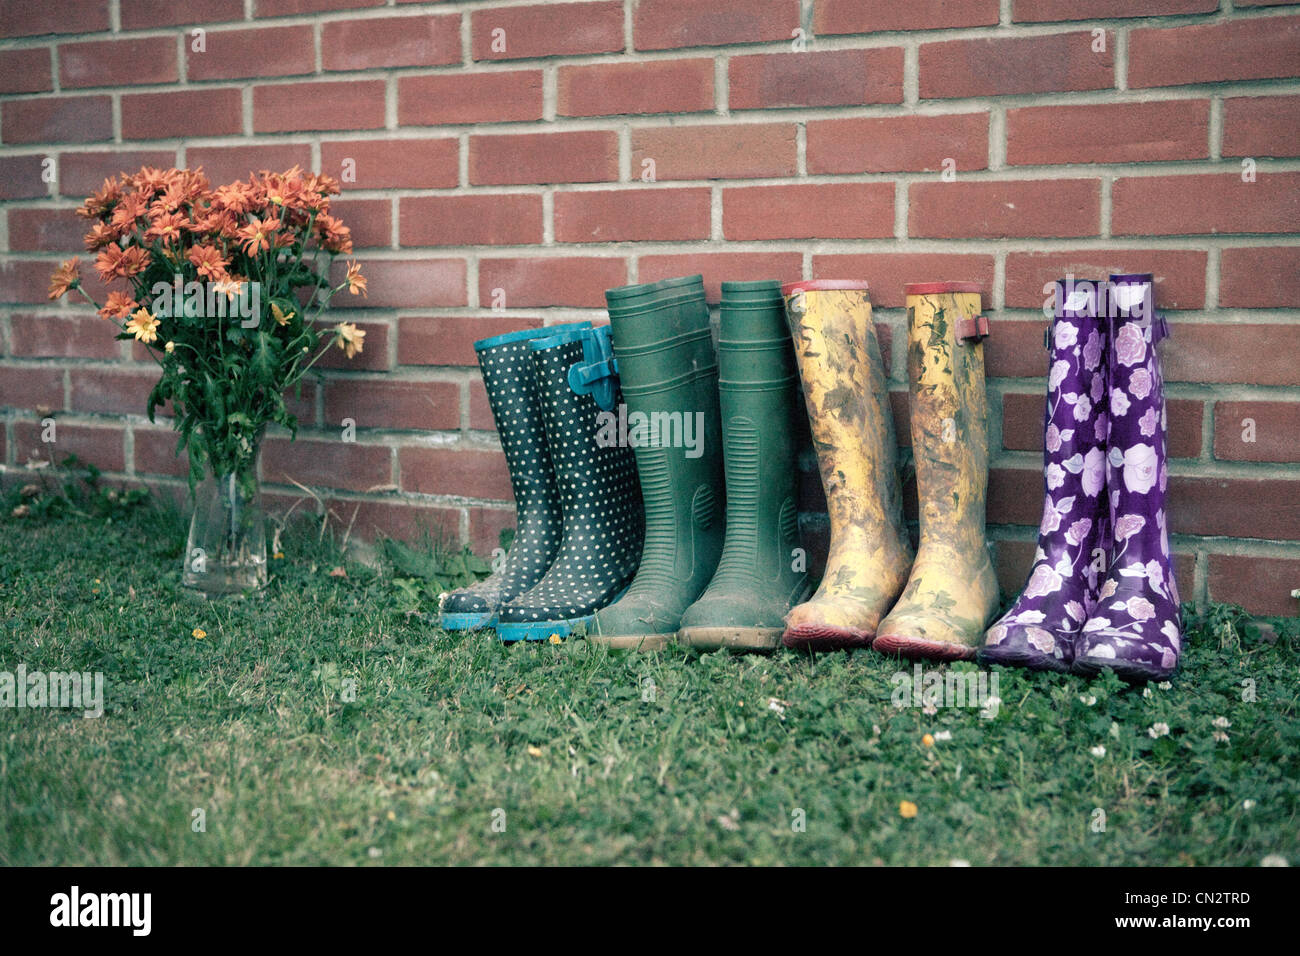 Wellington boots by brick wall - Stock Image